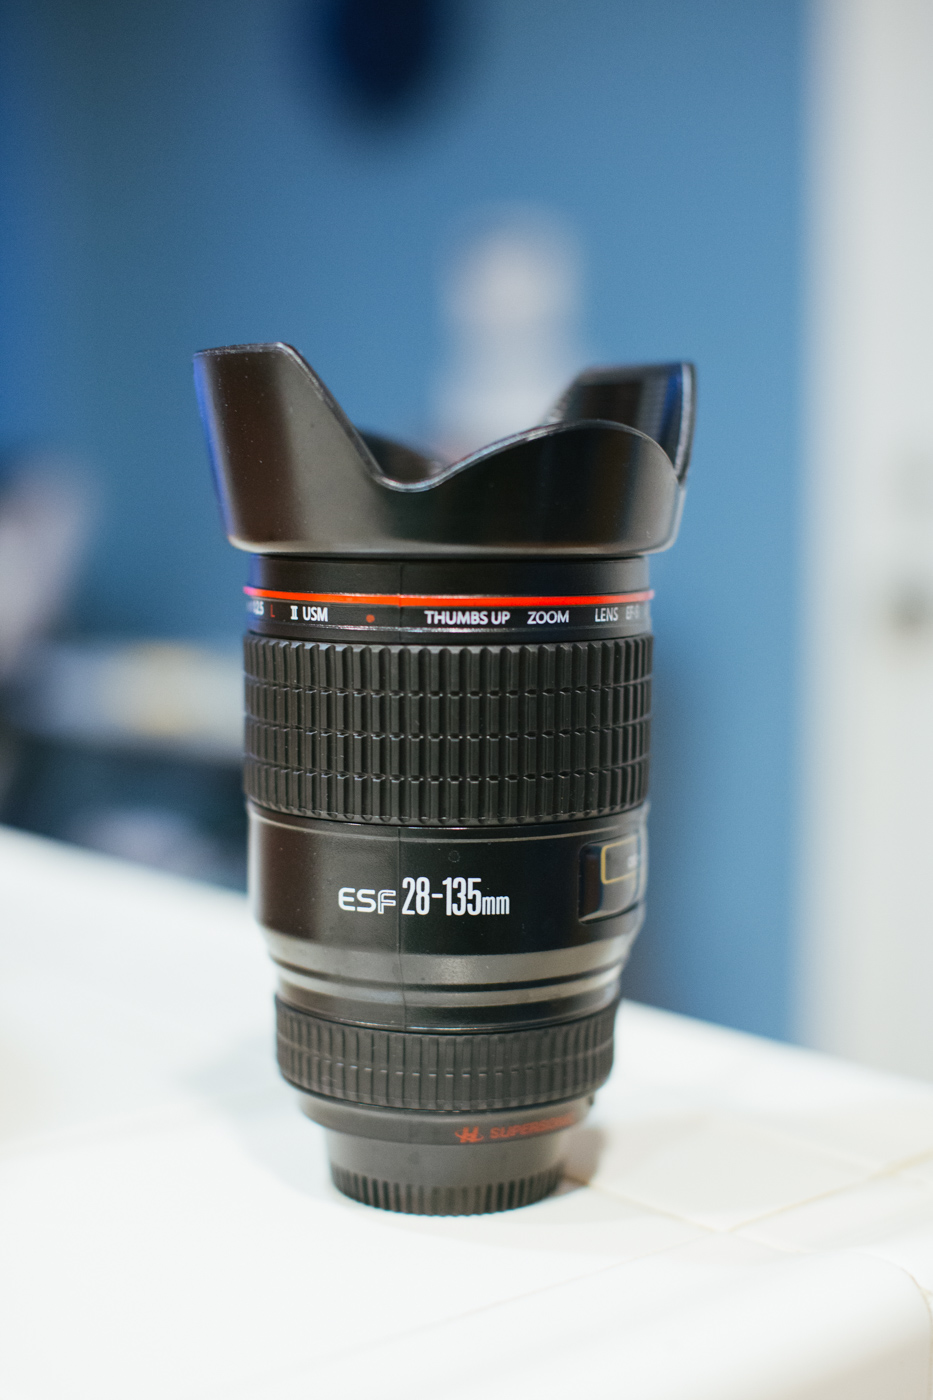 lens-coffee-mug-28-135mm-thumbsup